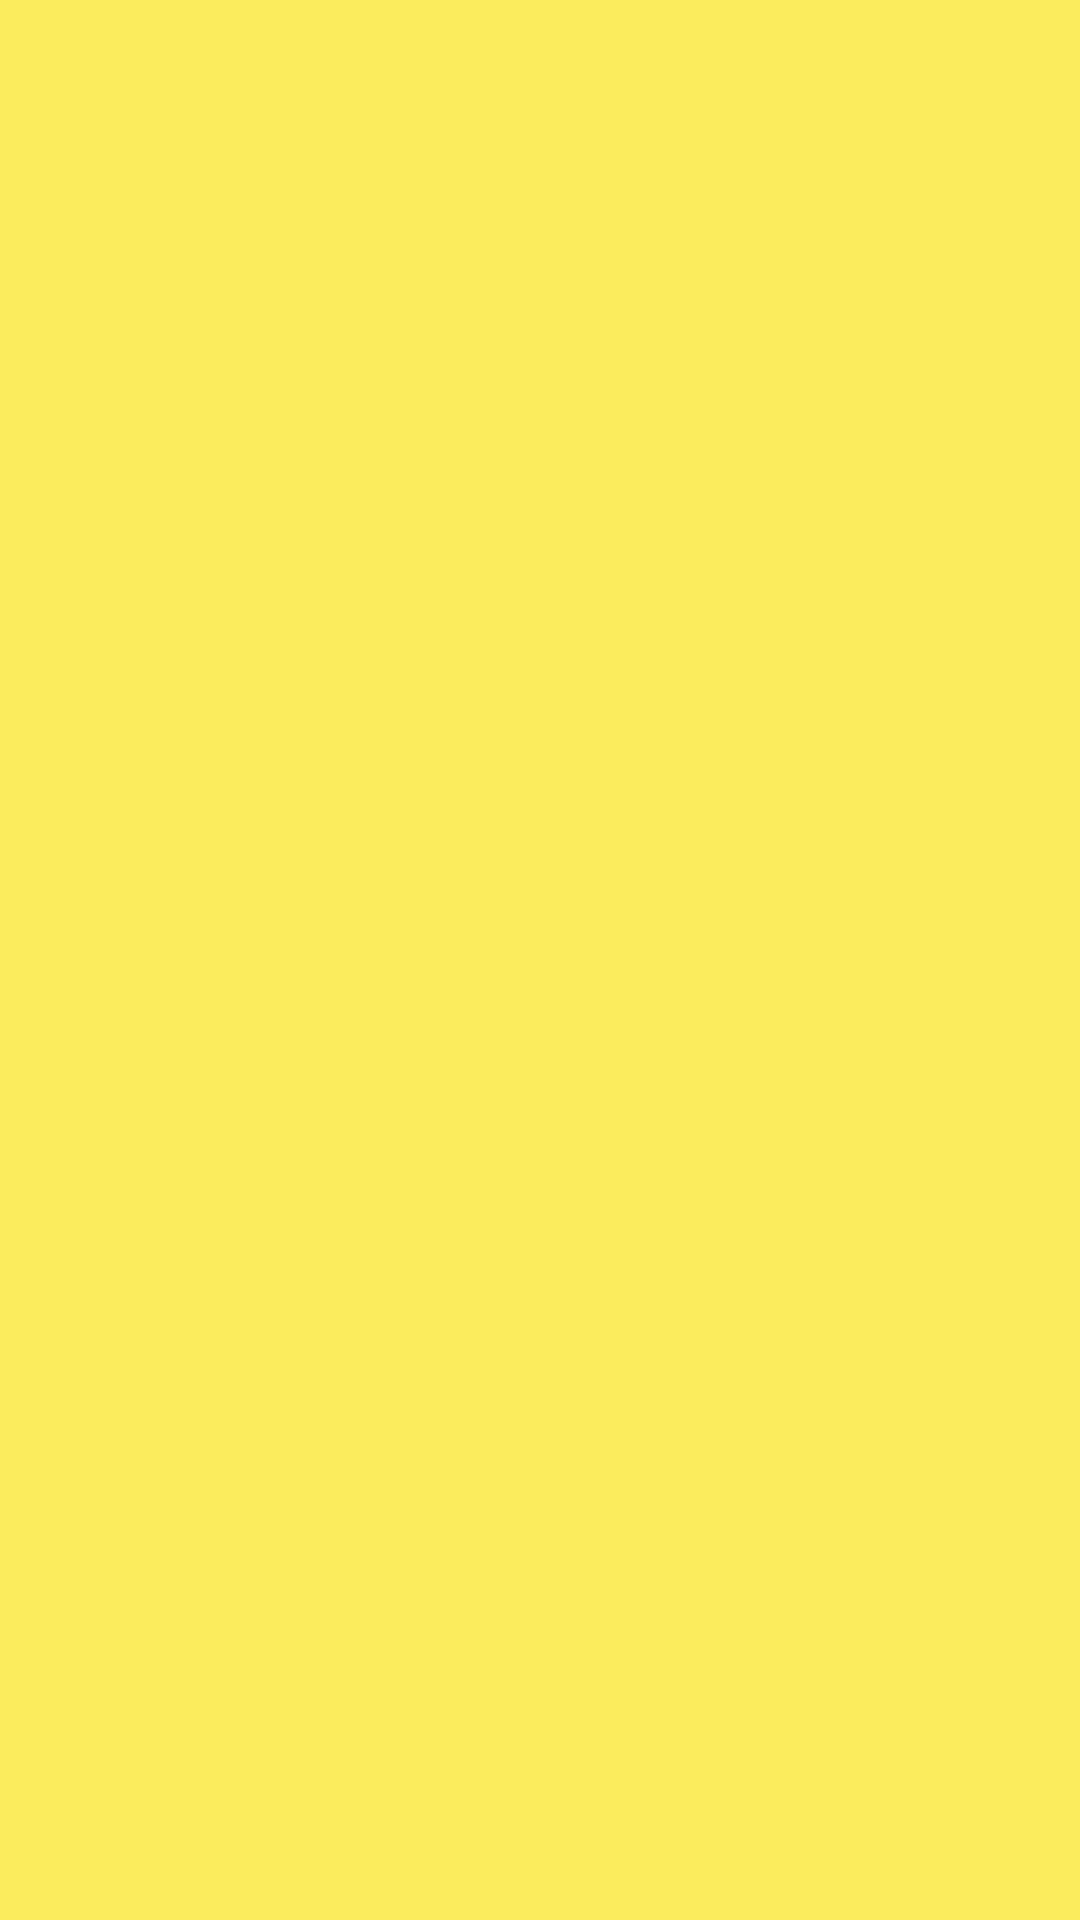 1080x1920 Maize Solid Color Background